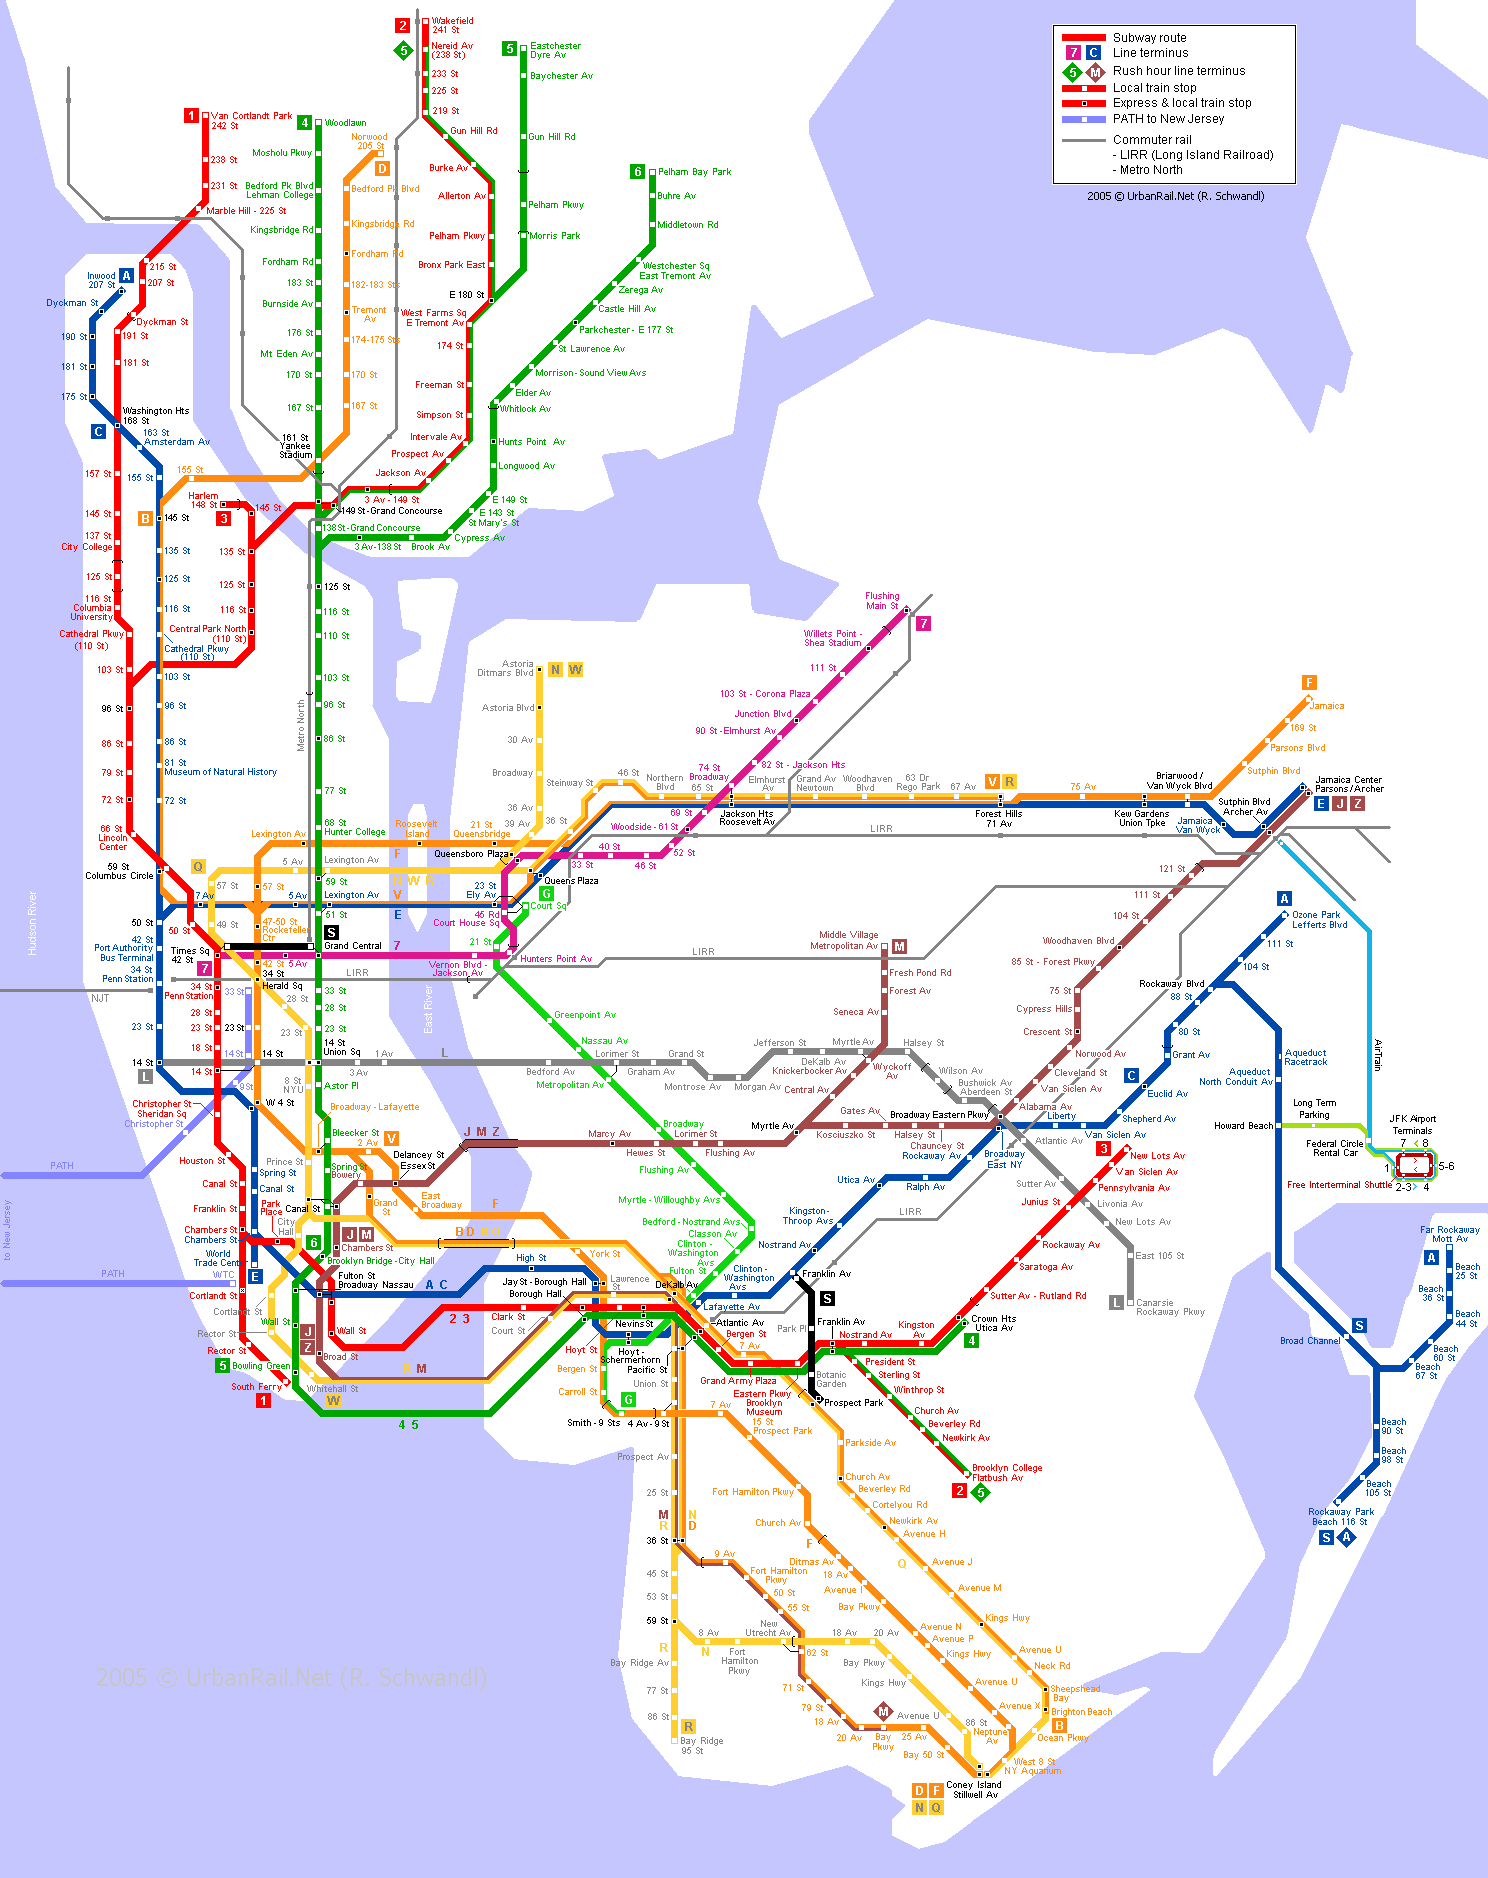 Metro Ny Map New York Subway Map for Download | Metro in New York   High  Metro Ny Map